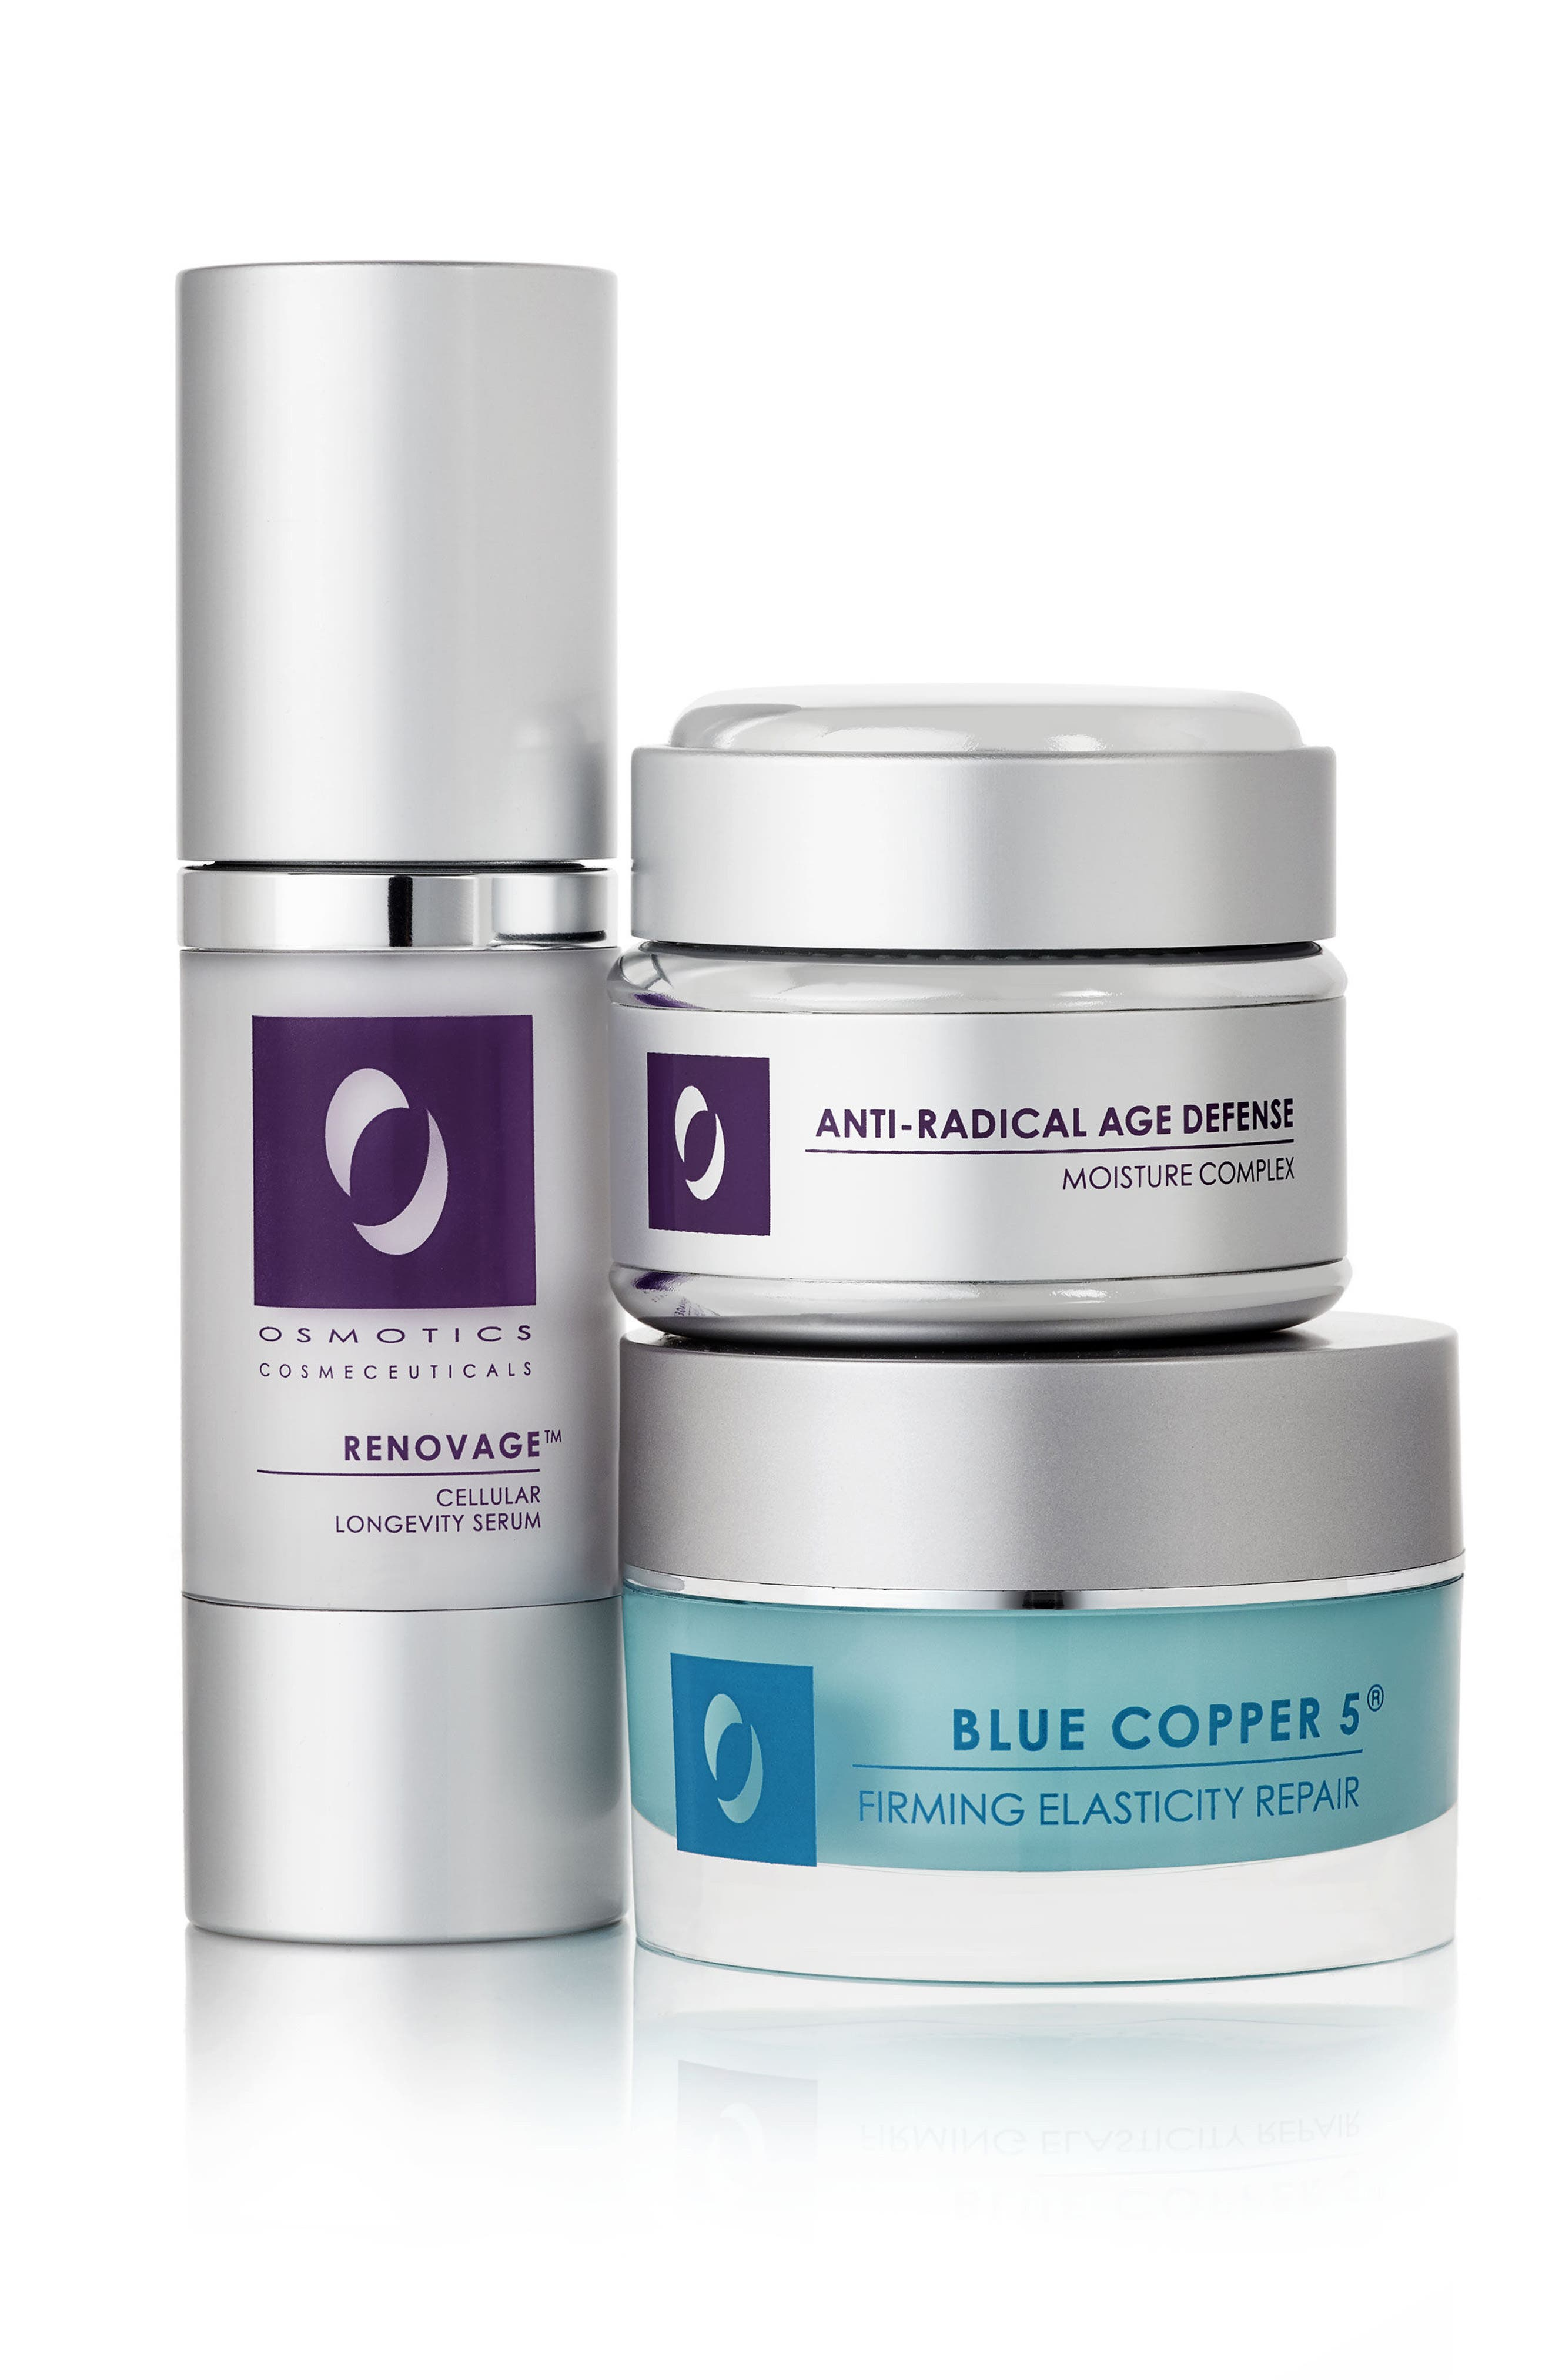 Osmotics Cosmeceuticals Anti-Aging Trilogy ($218 Value)